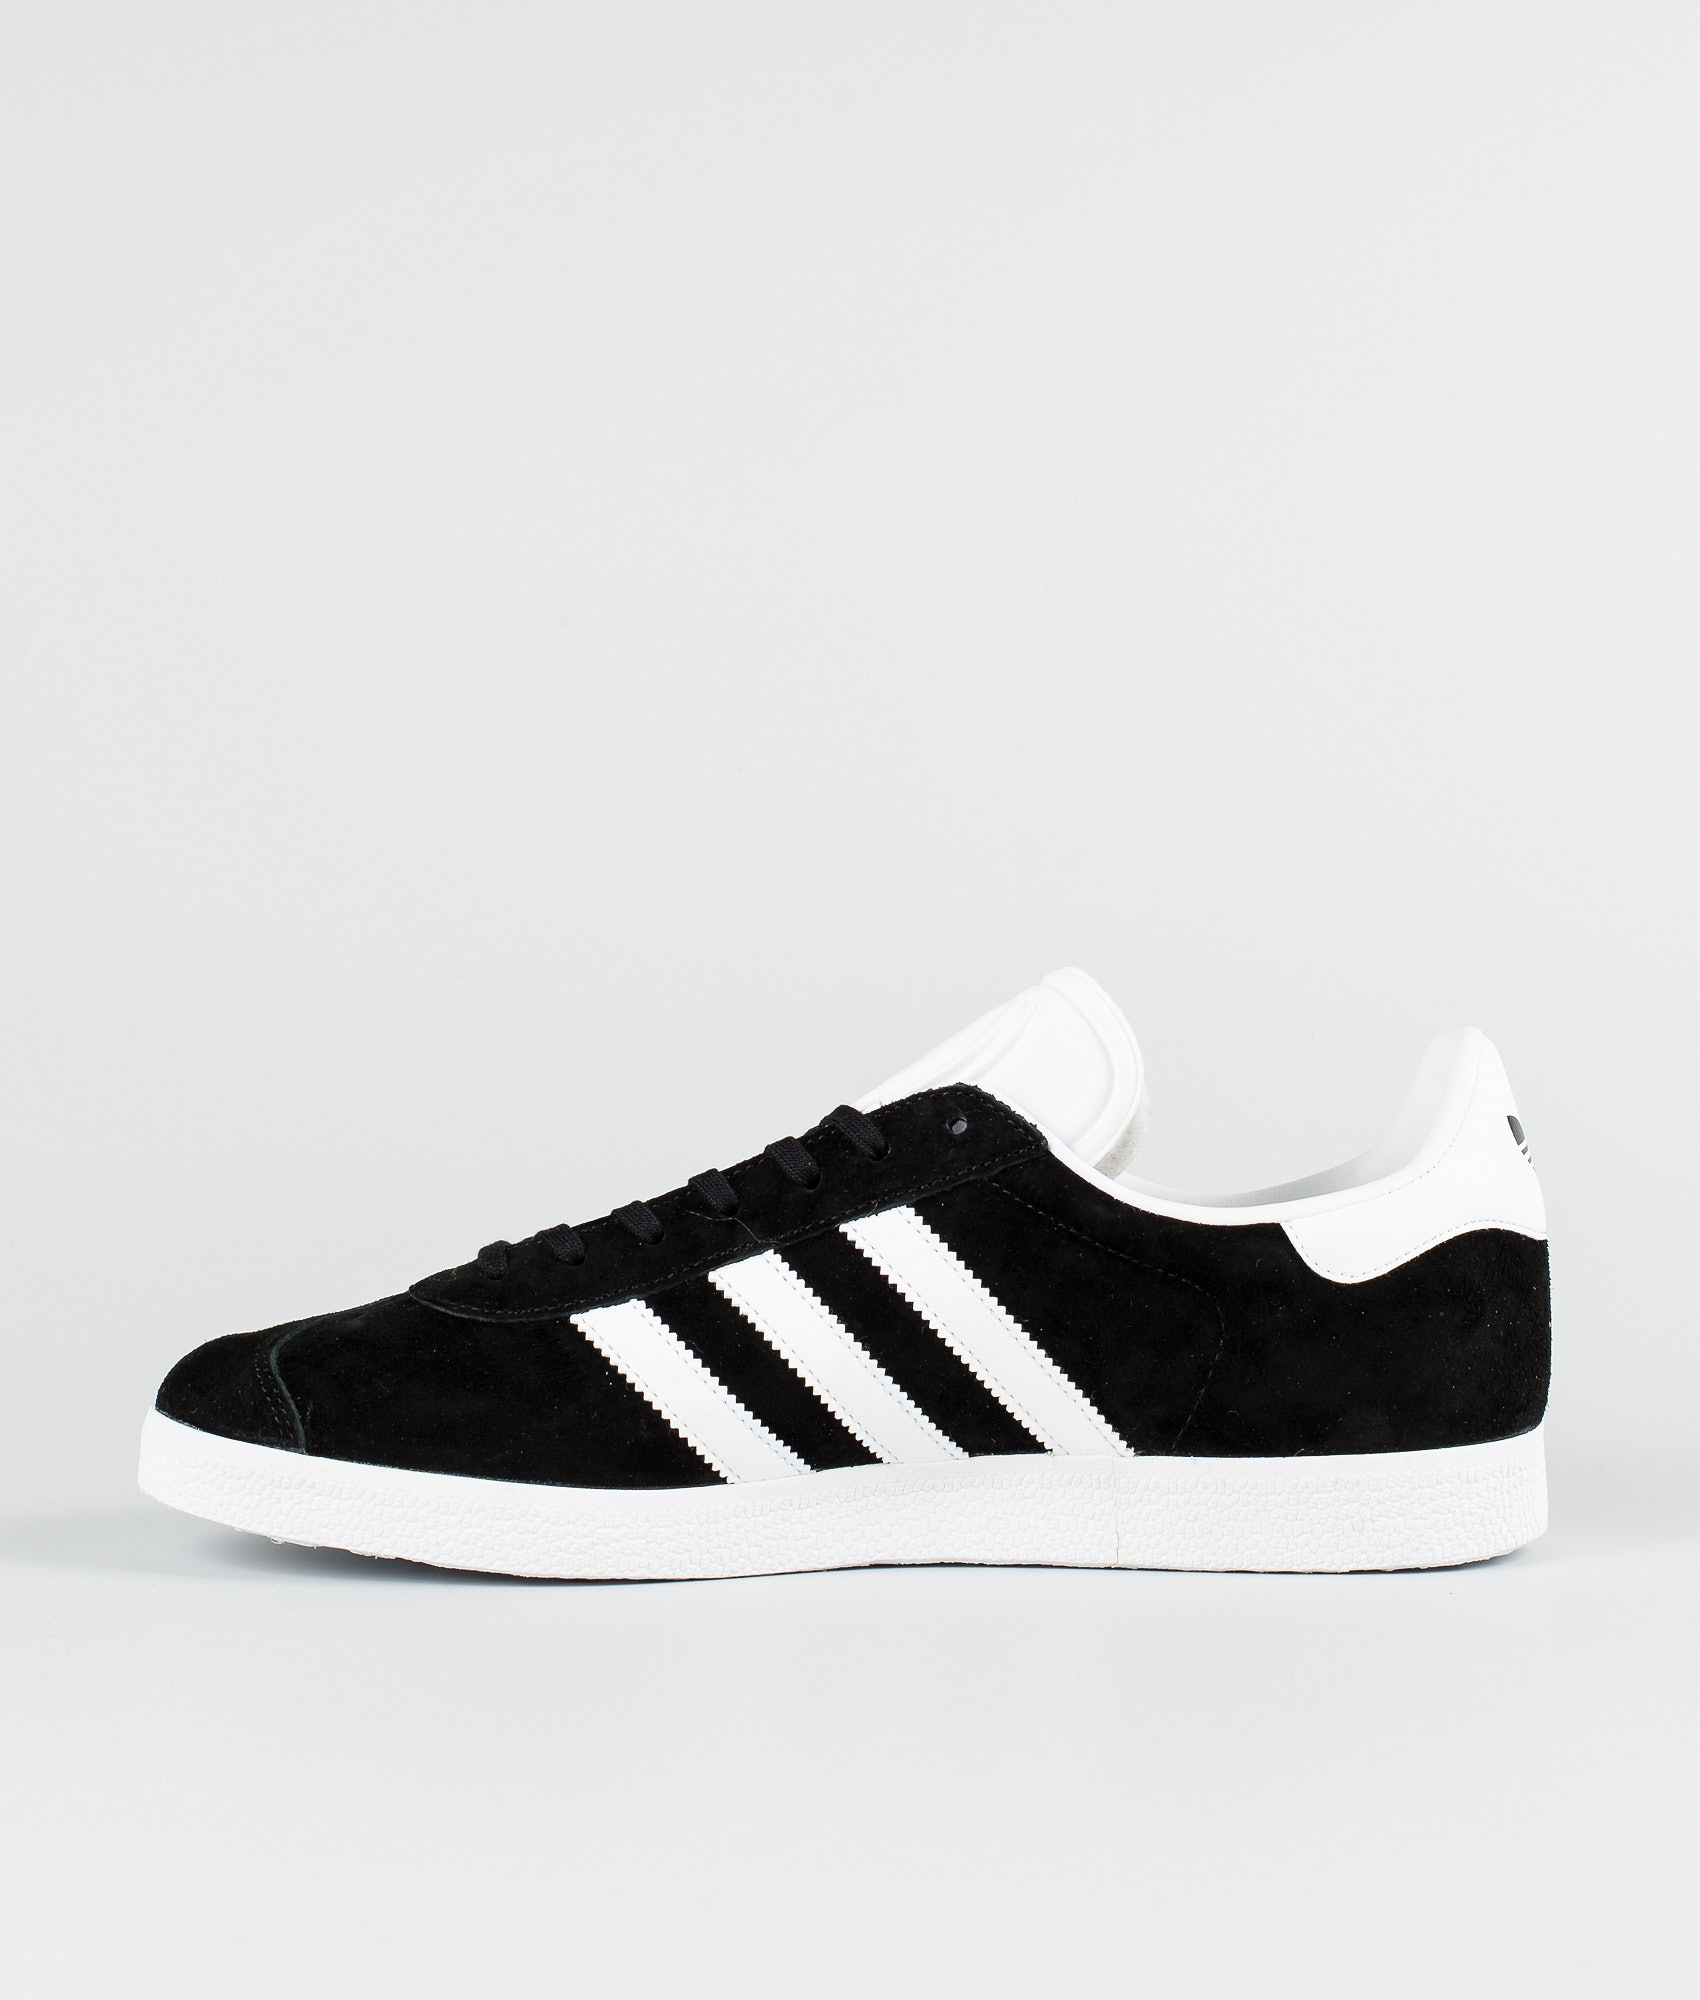 535316cc Adidas Originals Gazelle Sko Core Black/White/Goldmt - Ridestore.no